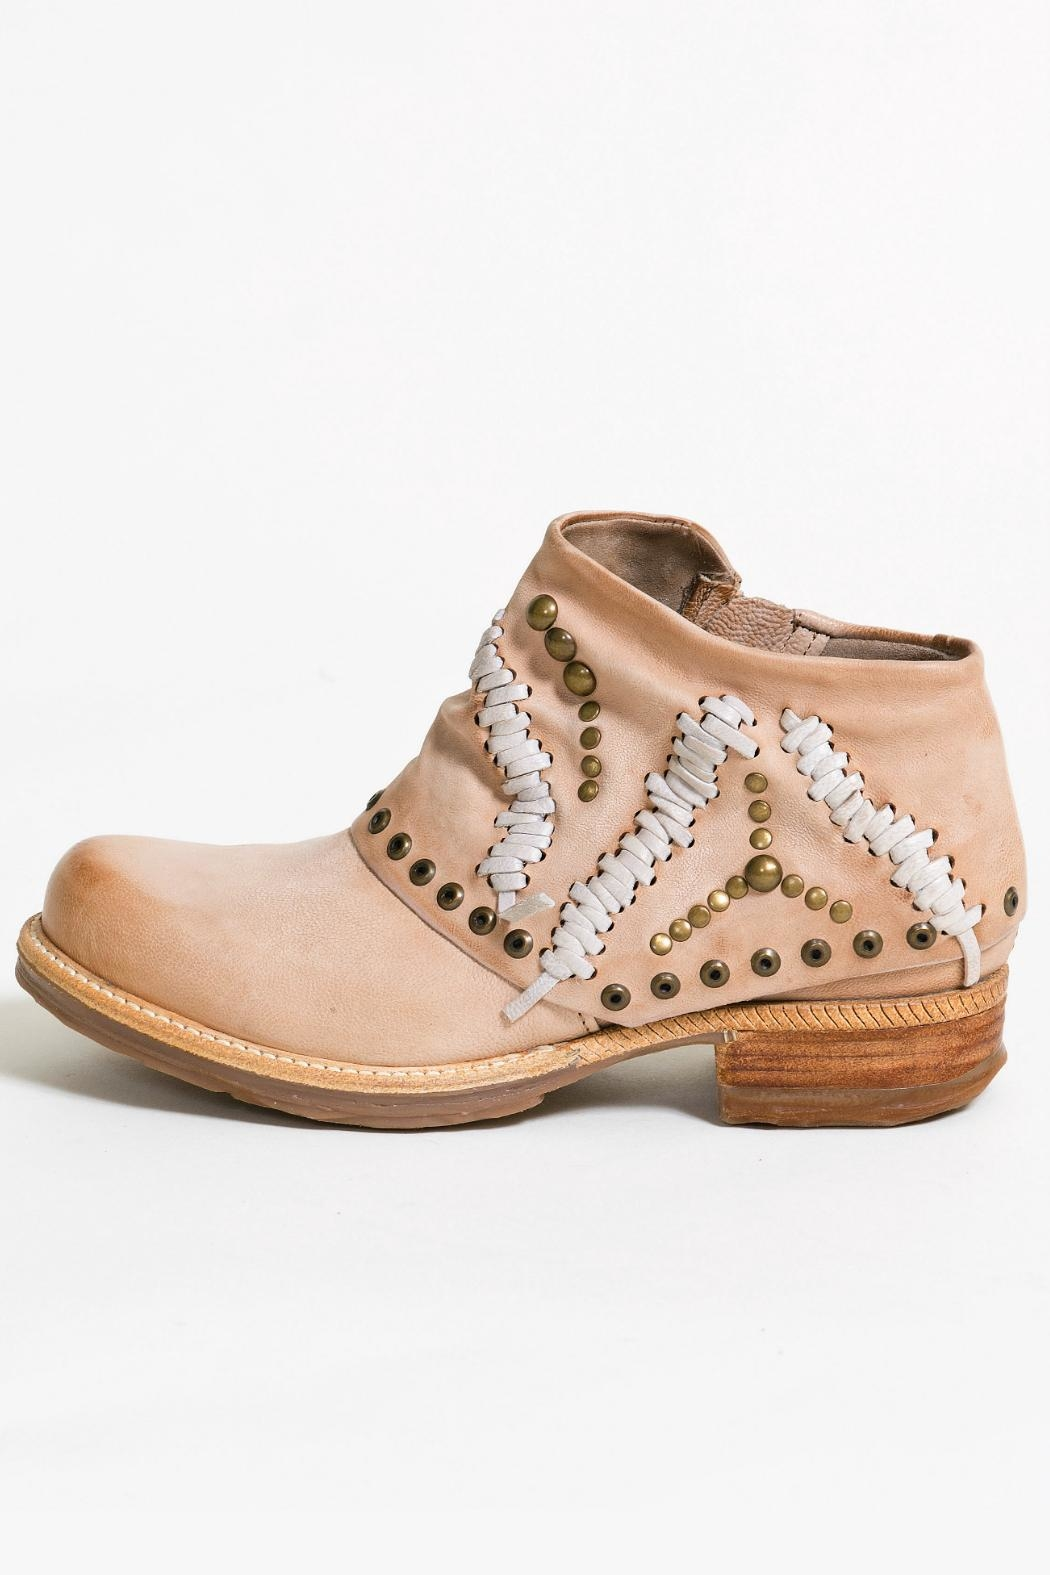 A.S. 98 Brown Bootie - Main Image